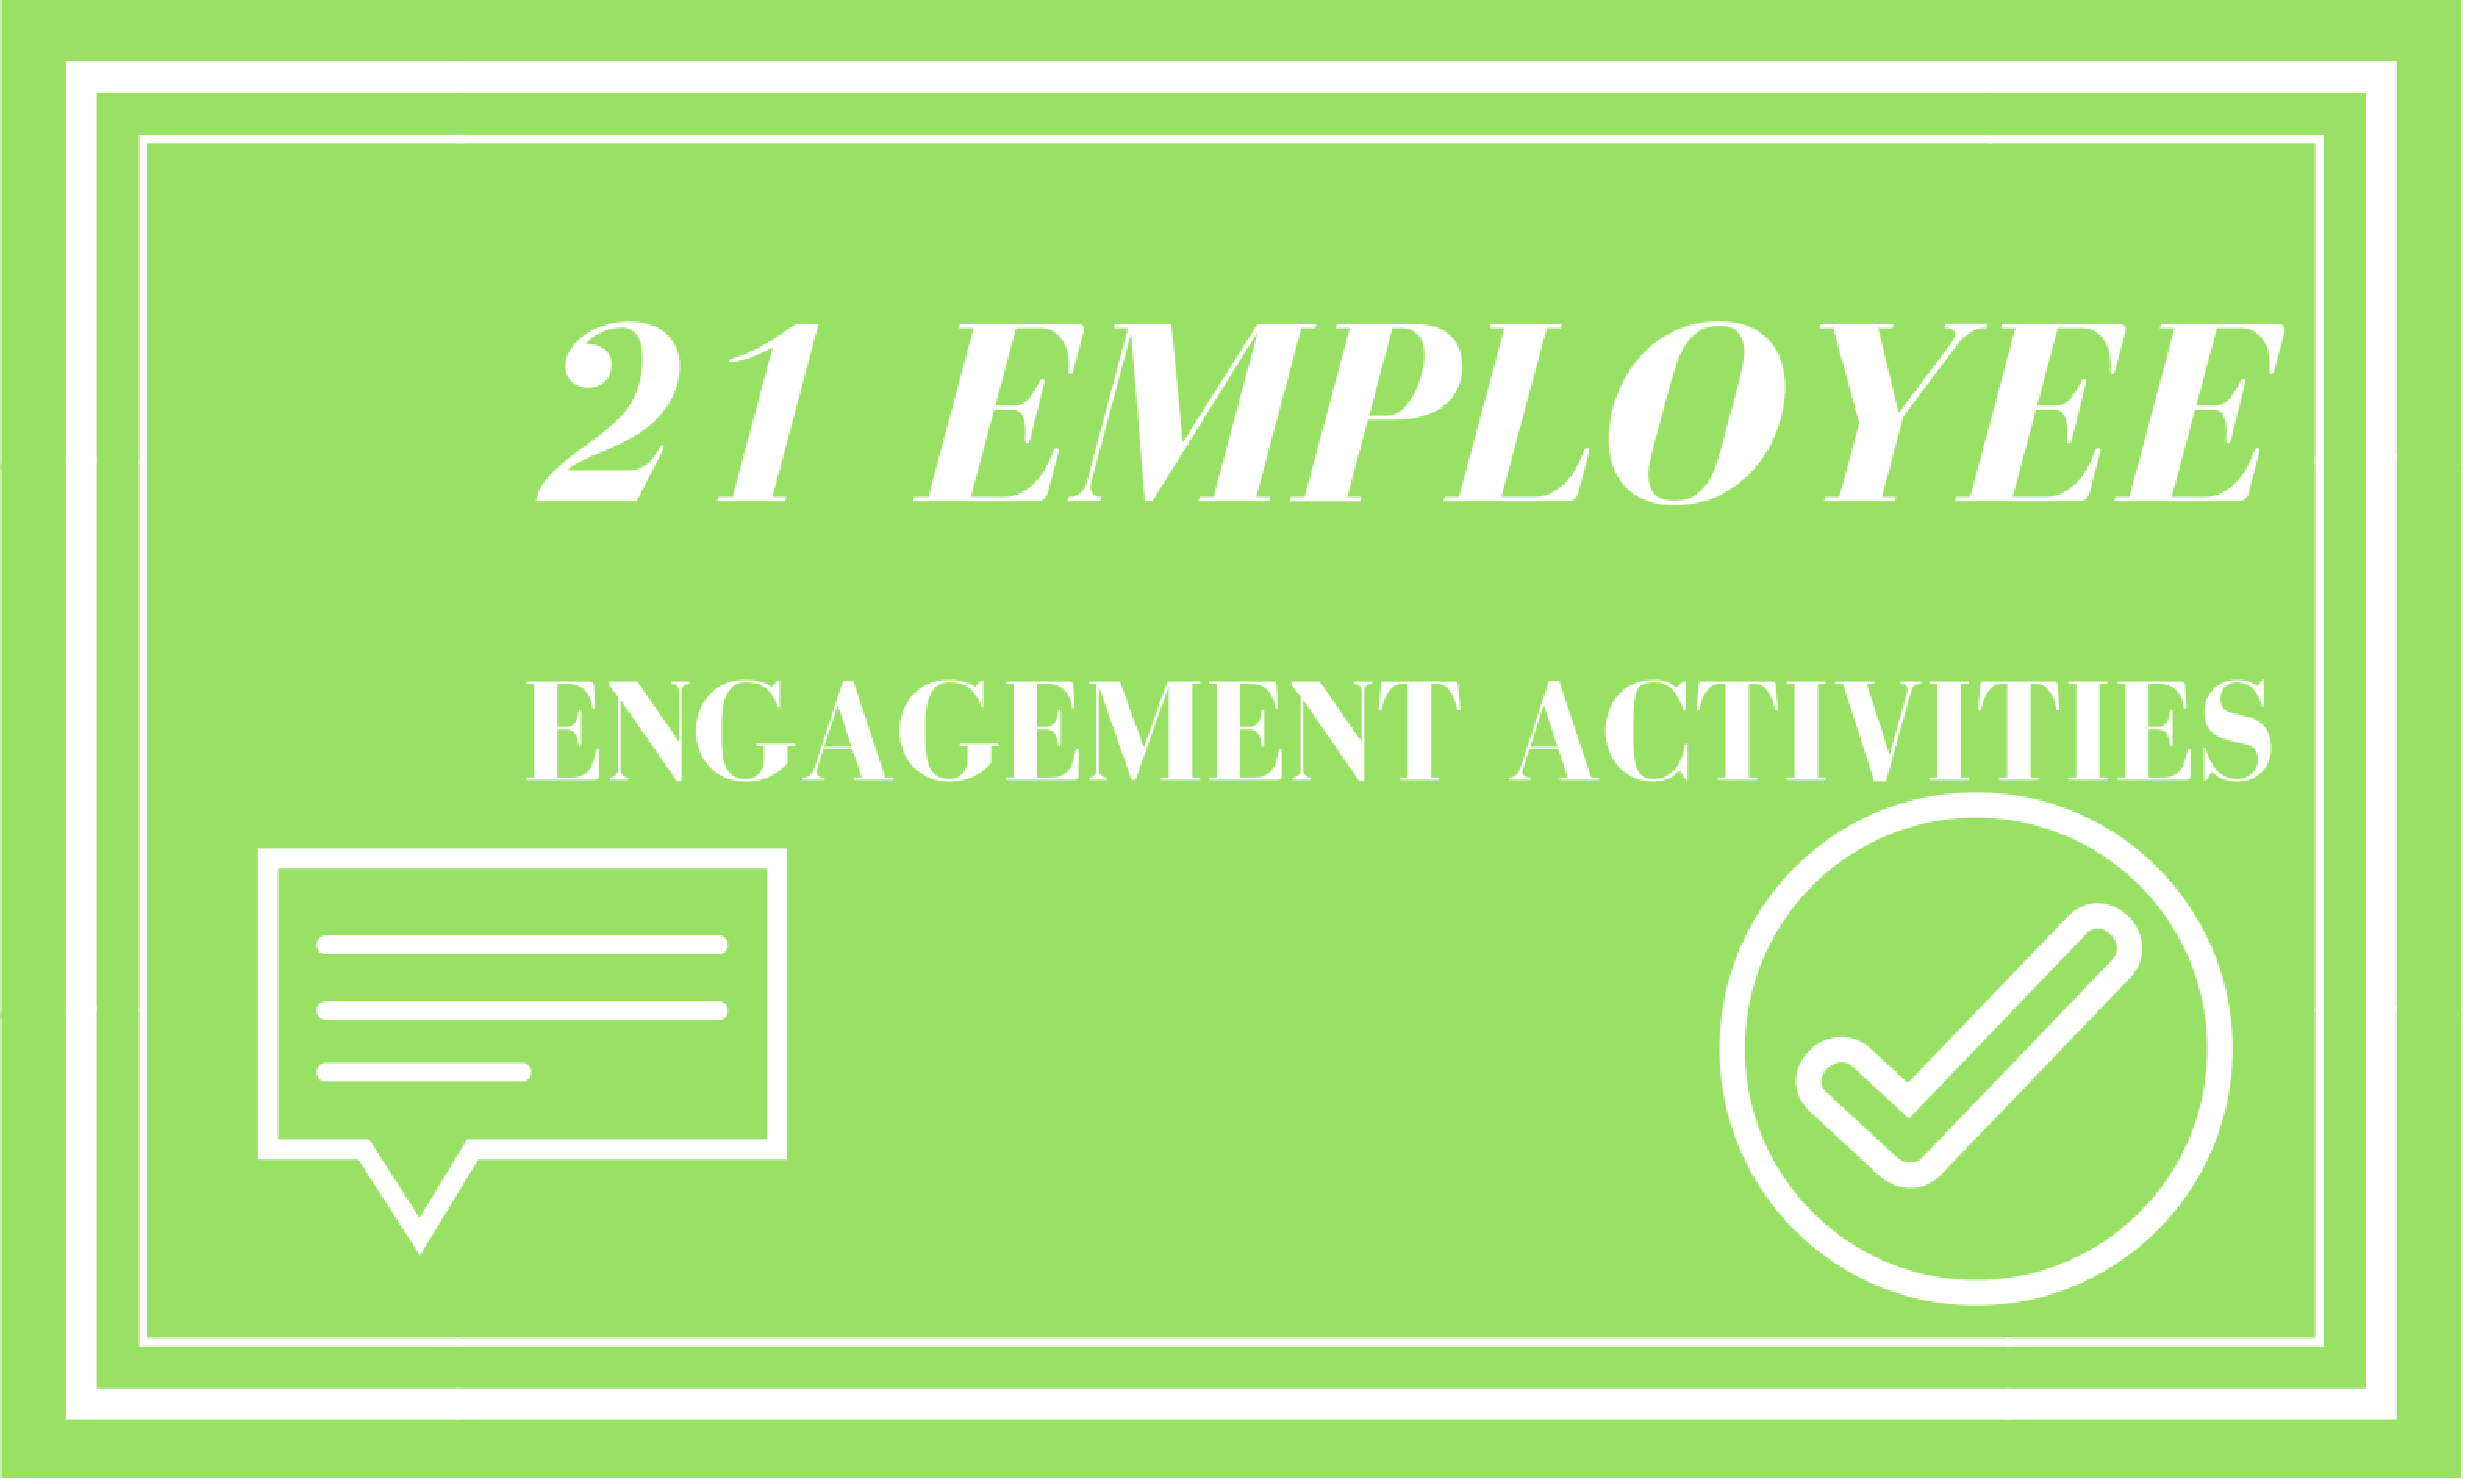 21 employee engagement activities